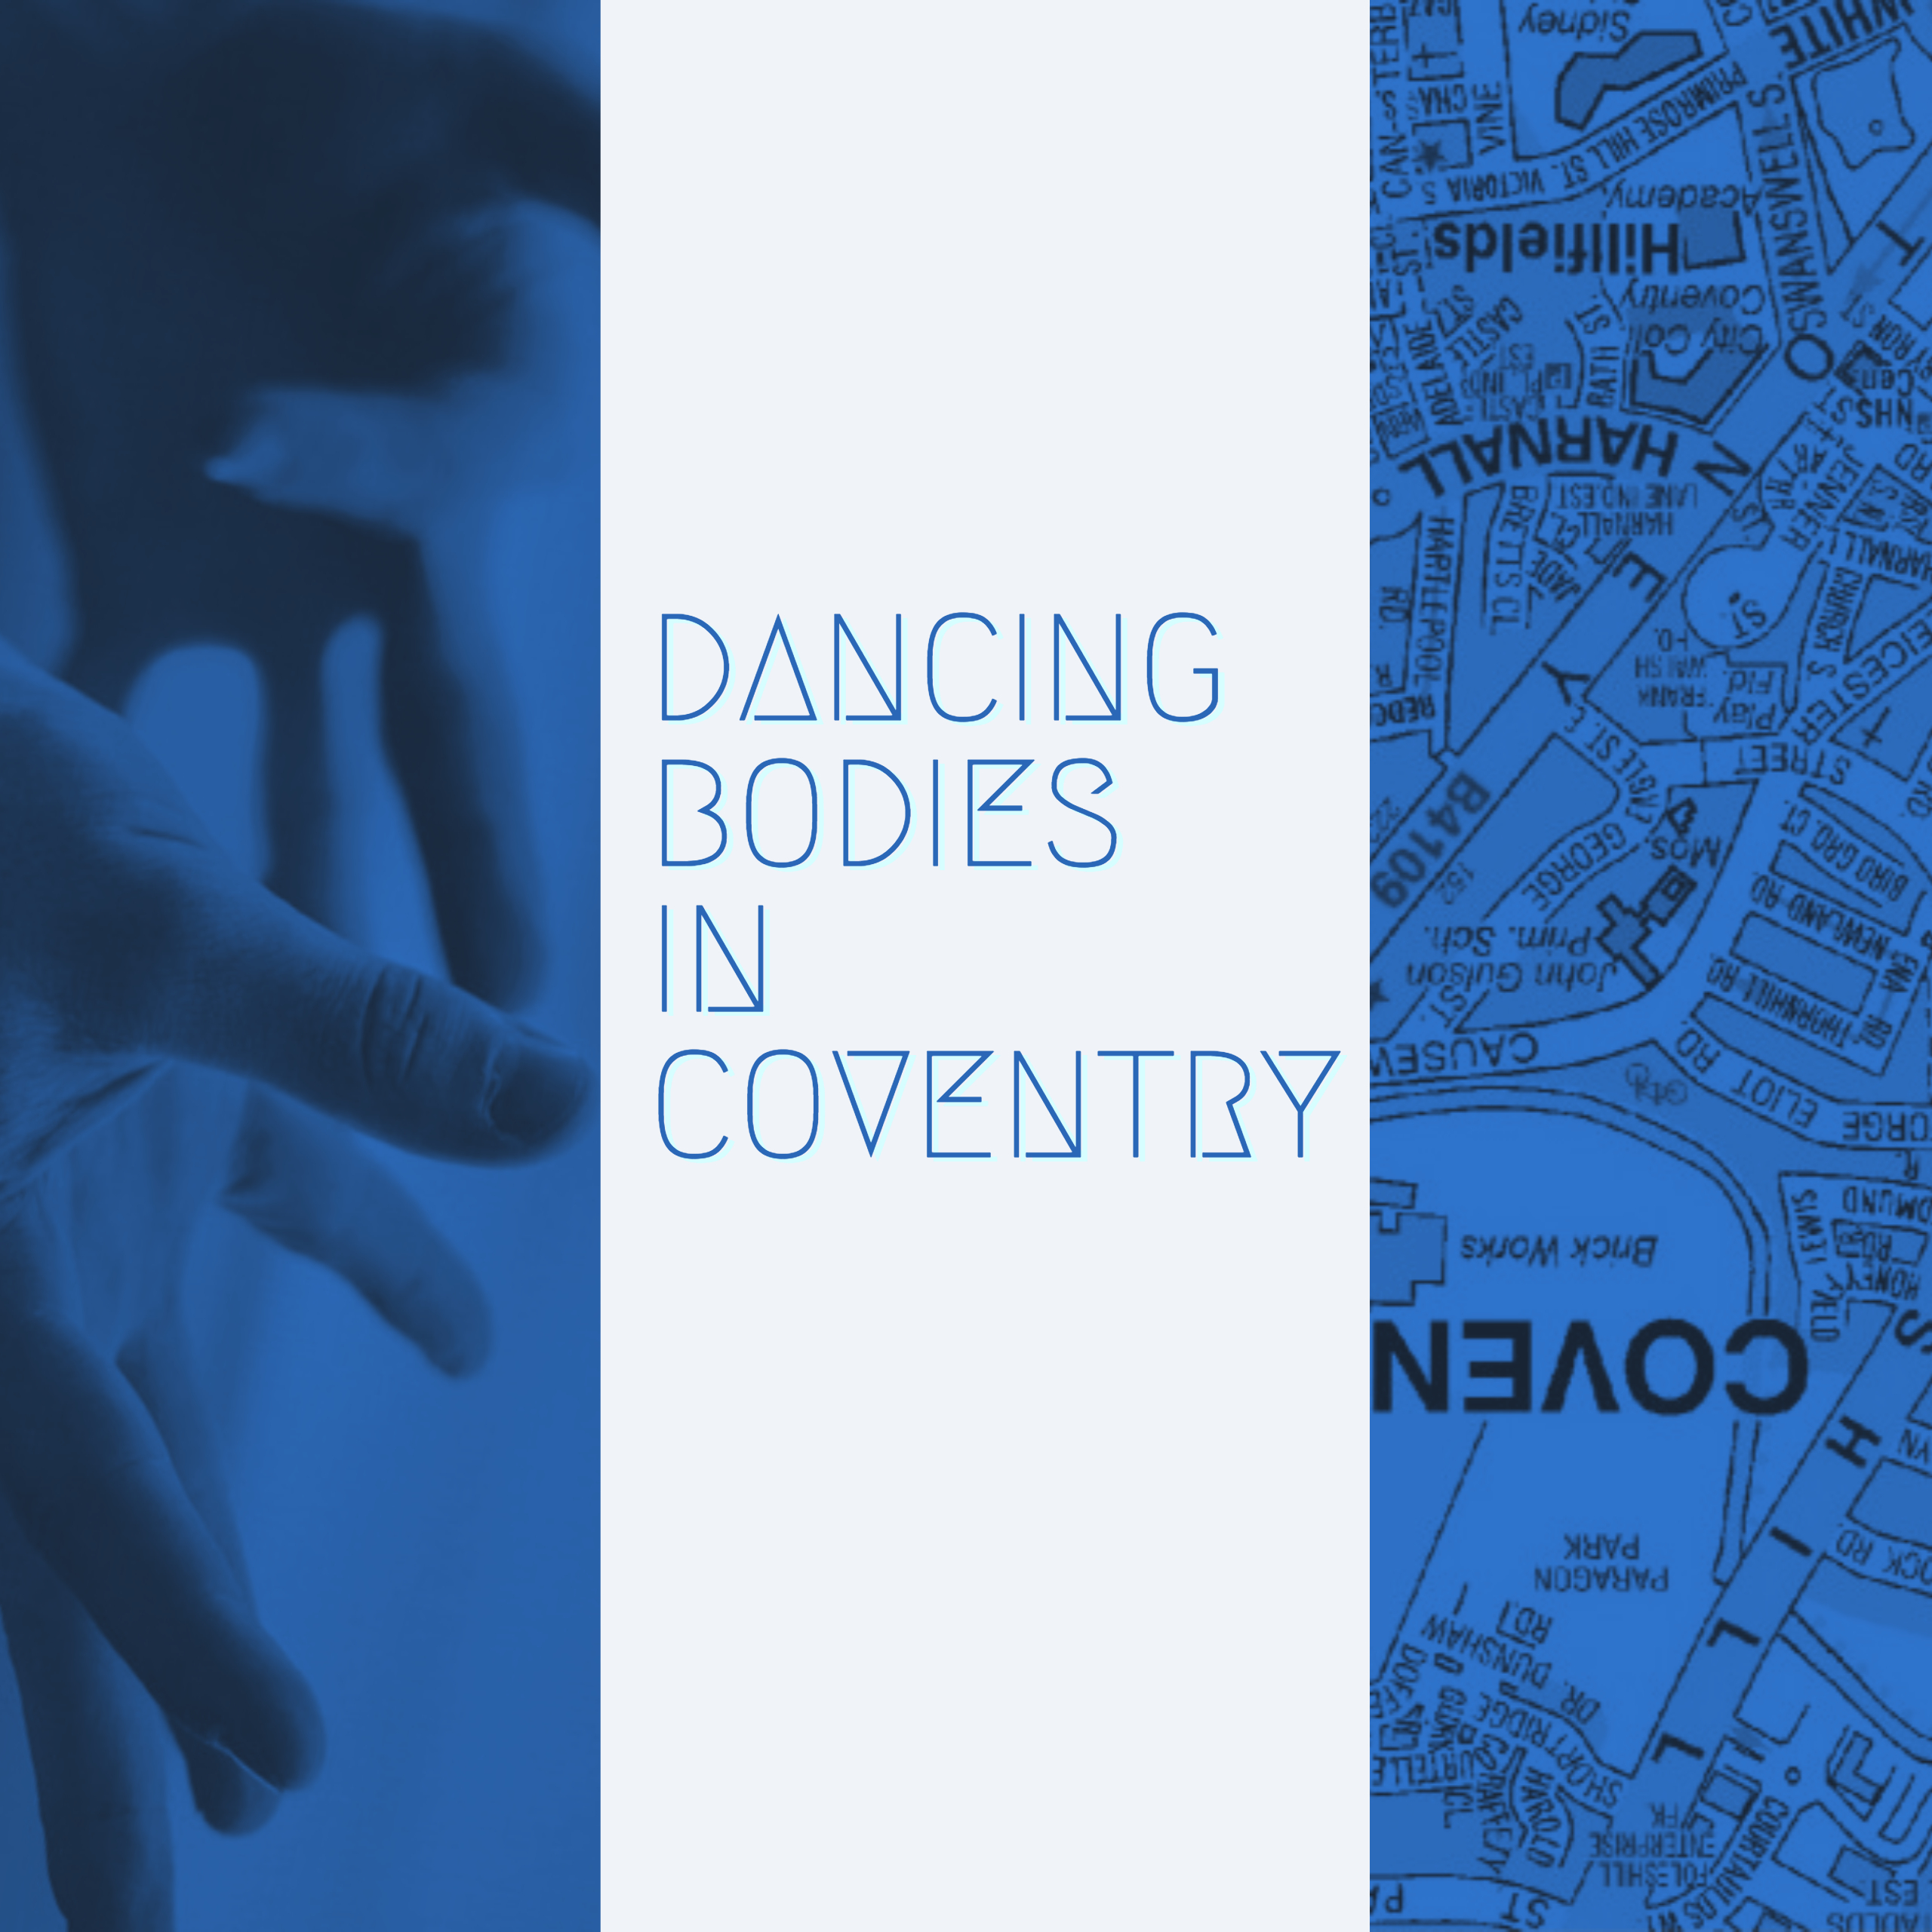 Dancing Bodies in Coventry